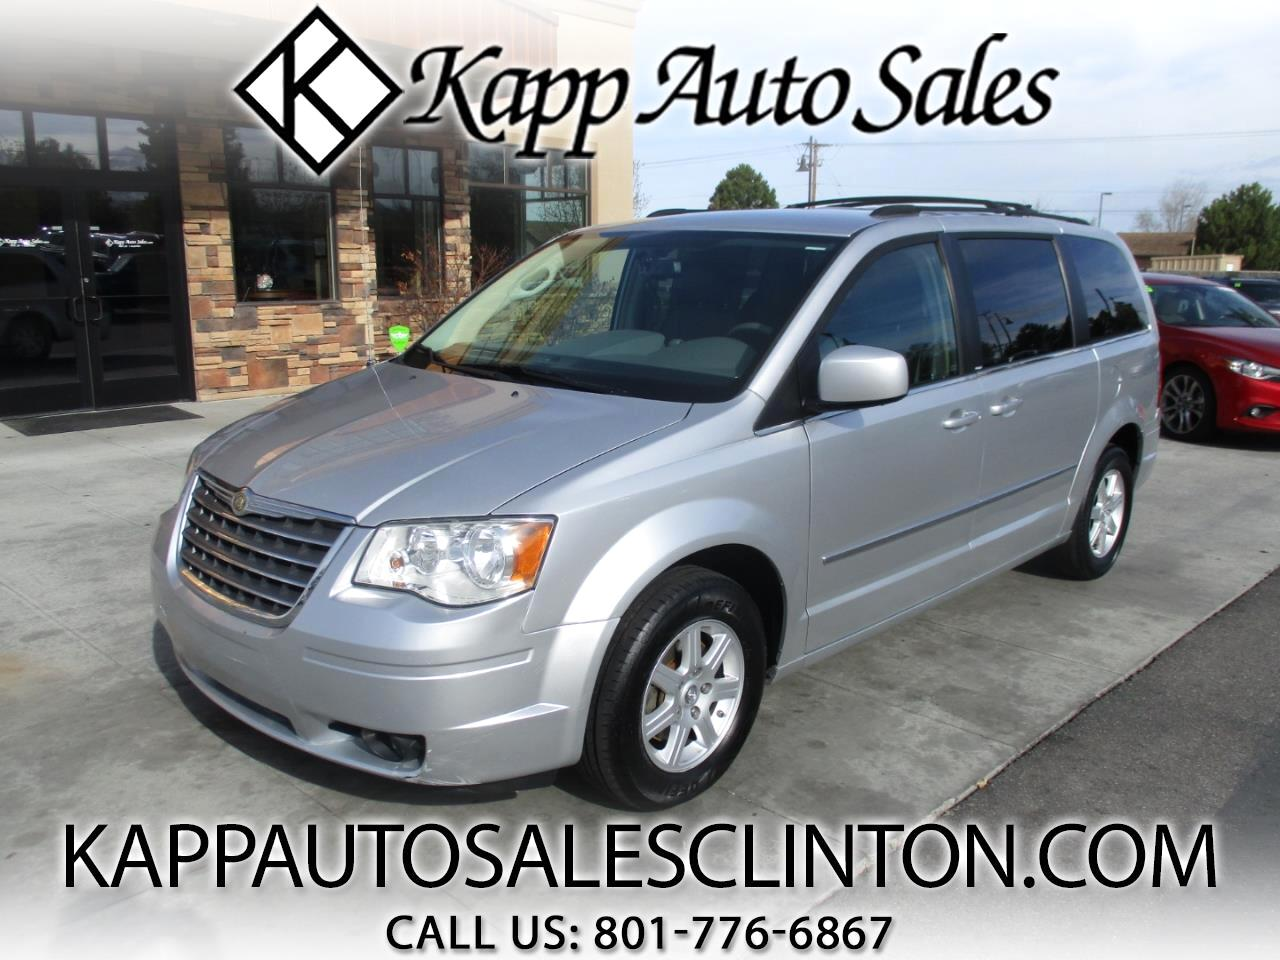 2010 Chrysler Town & Country 4dr Wgn Touring